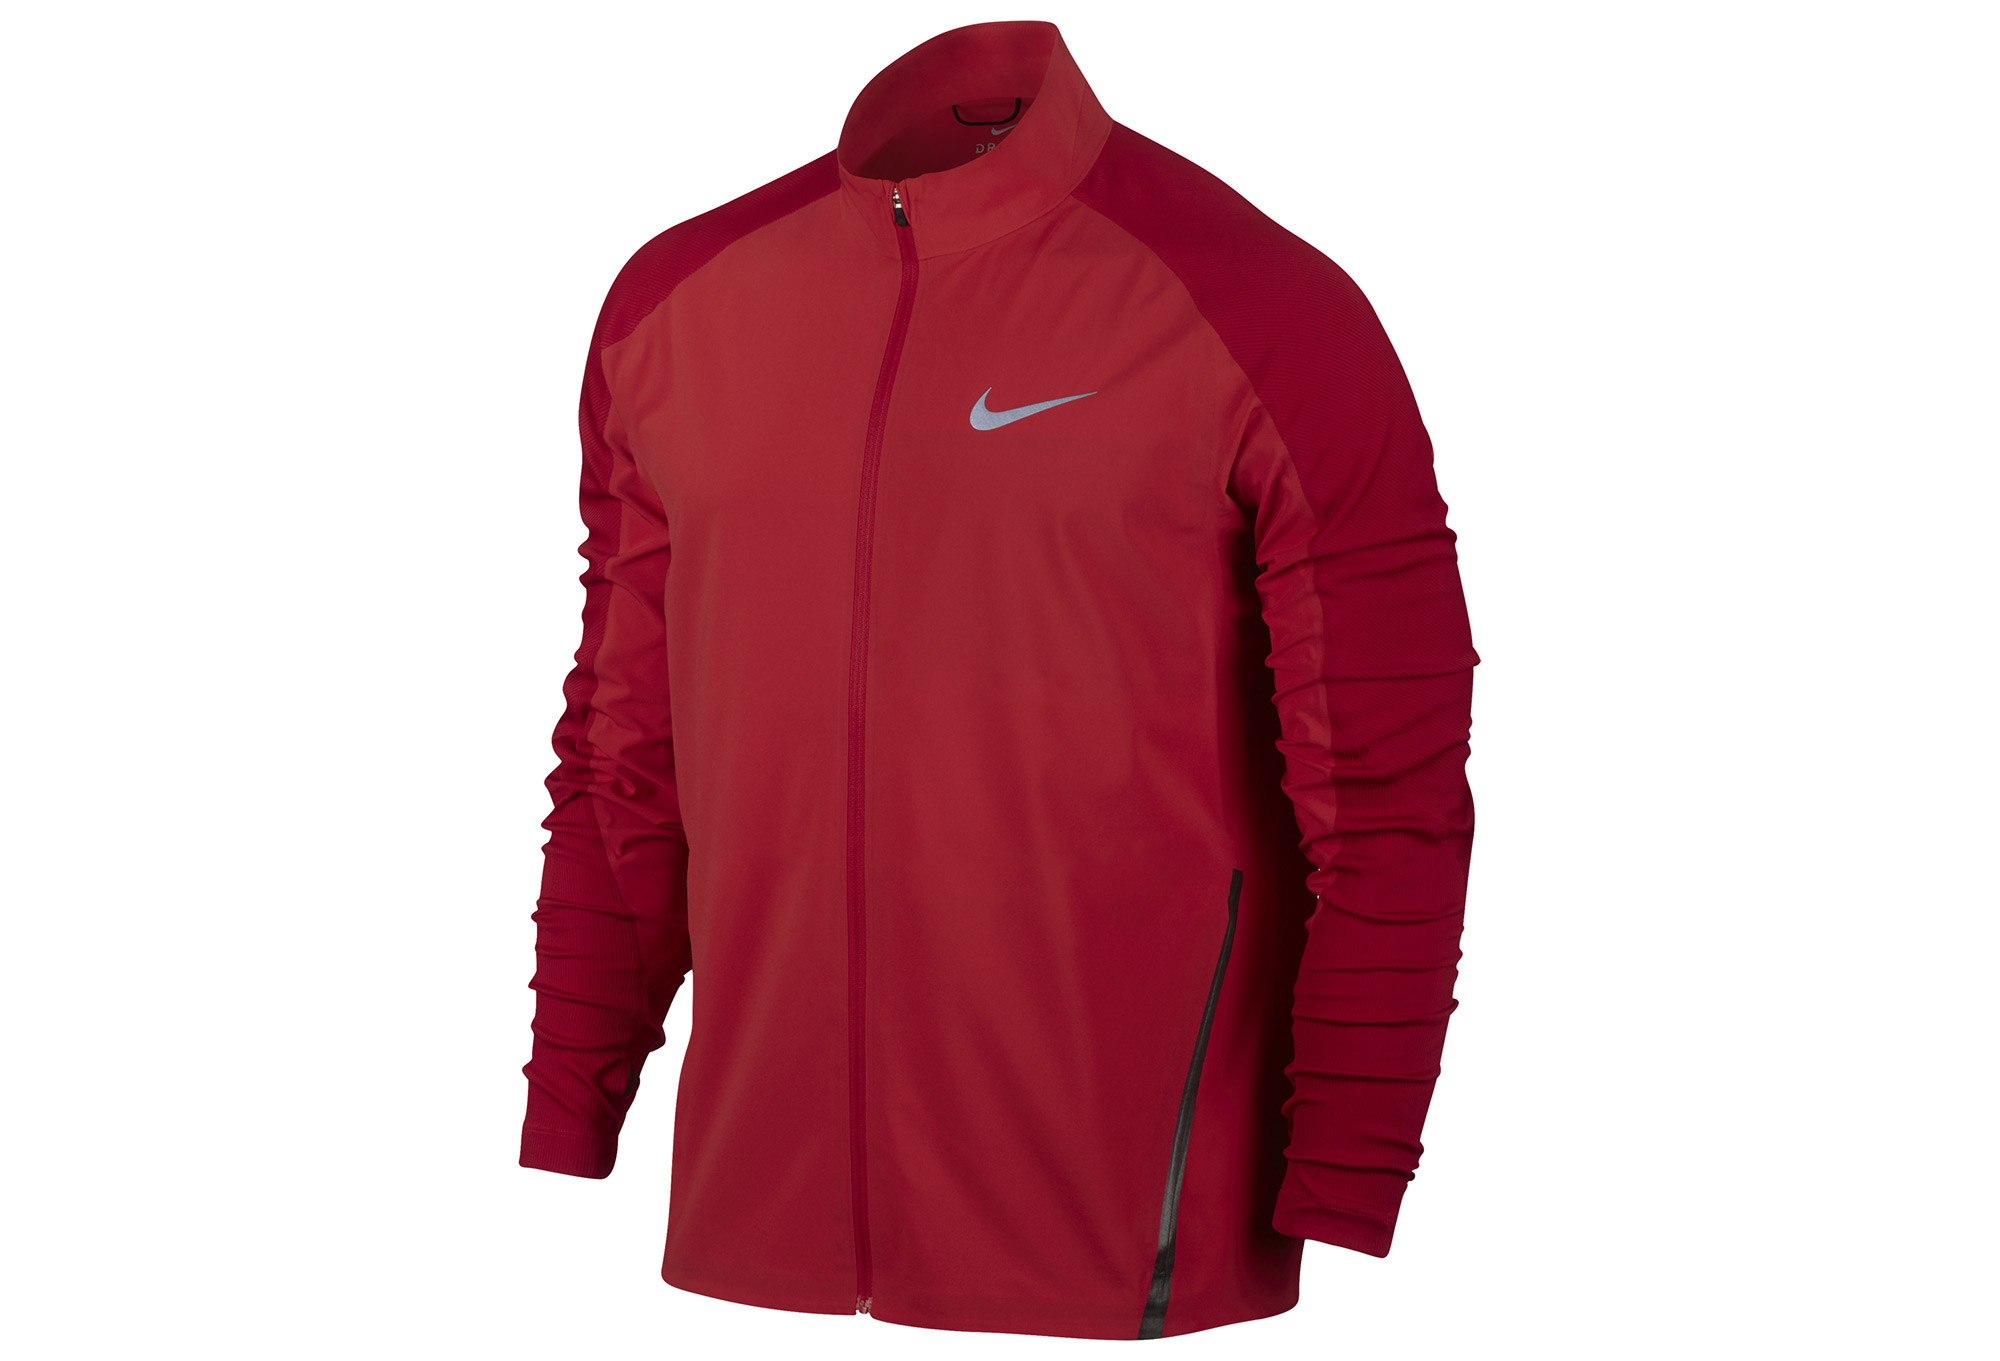 veste nike running rouge. Black Bedroom Furniture Sets. Home Design Ideas